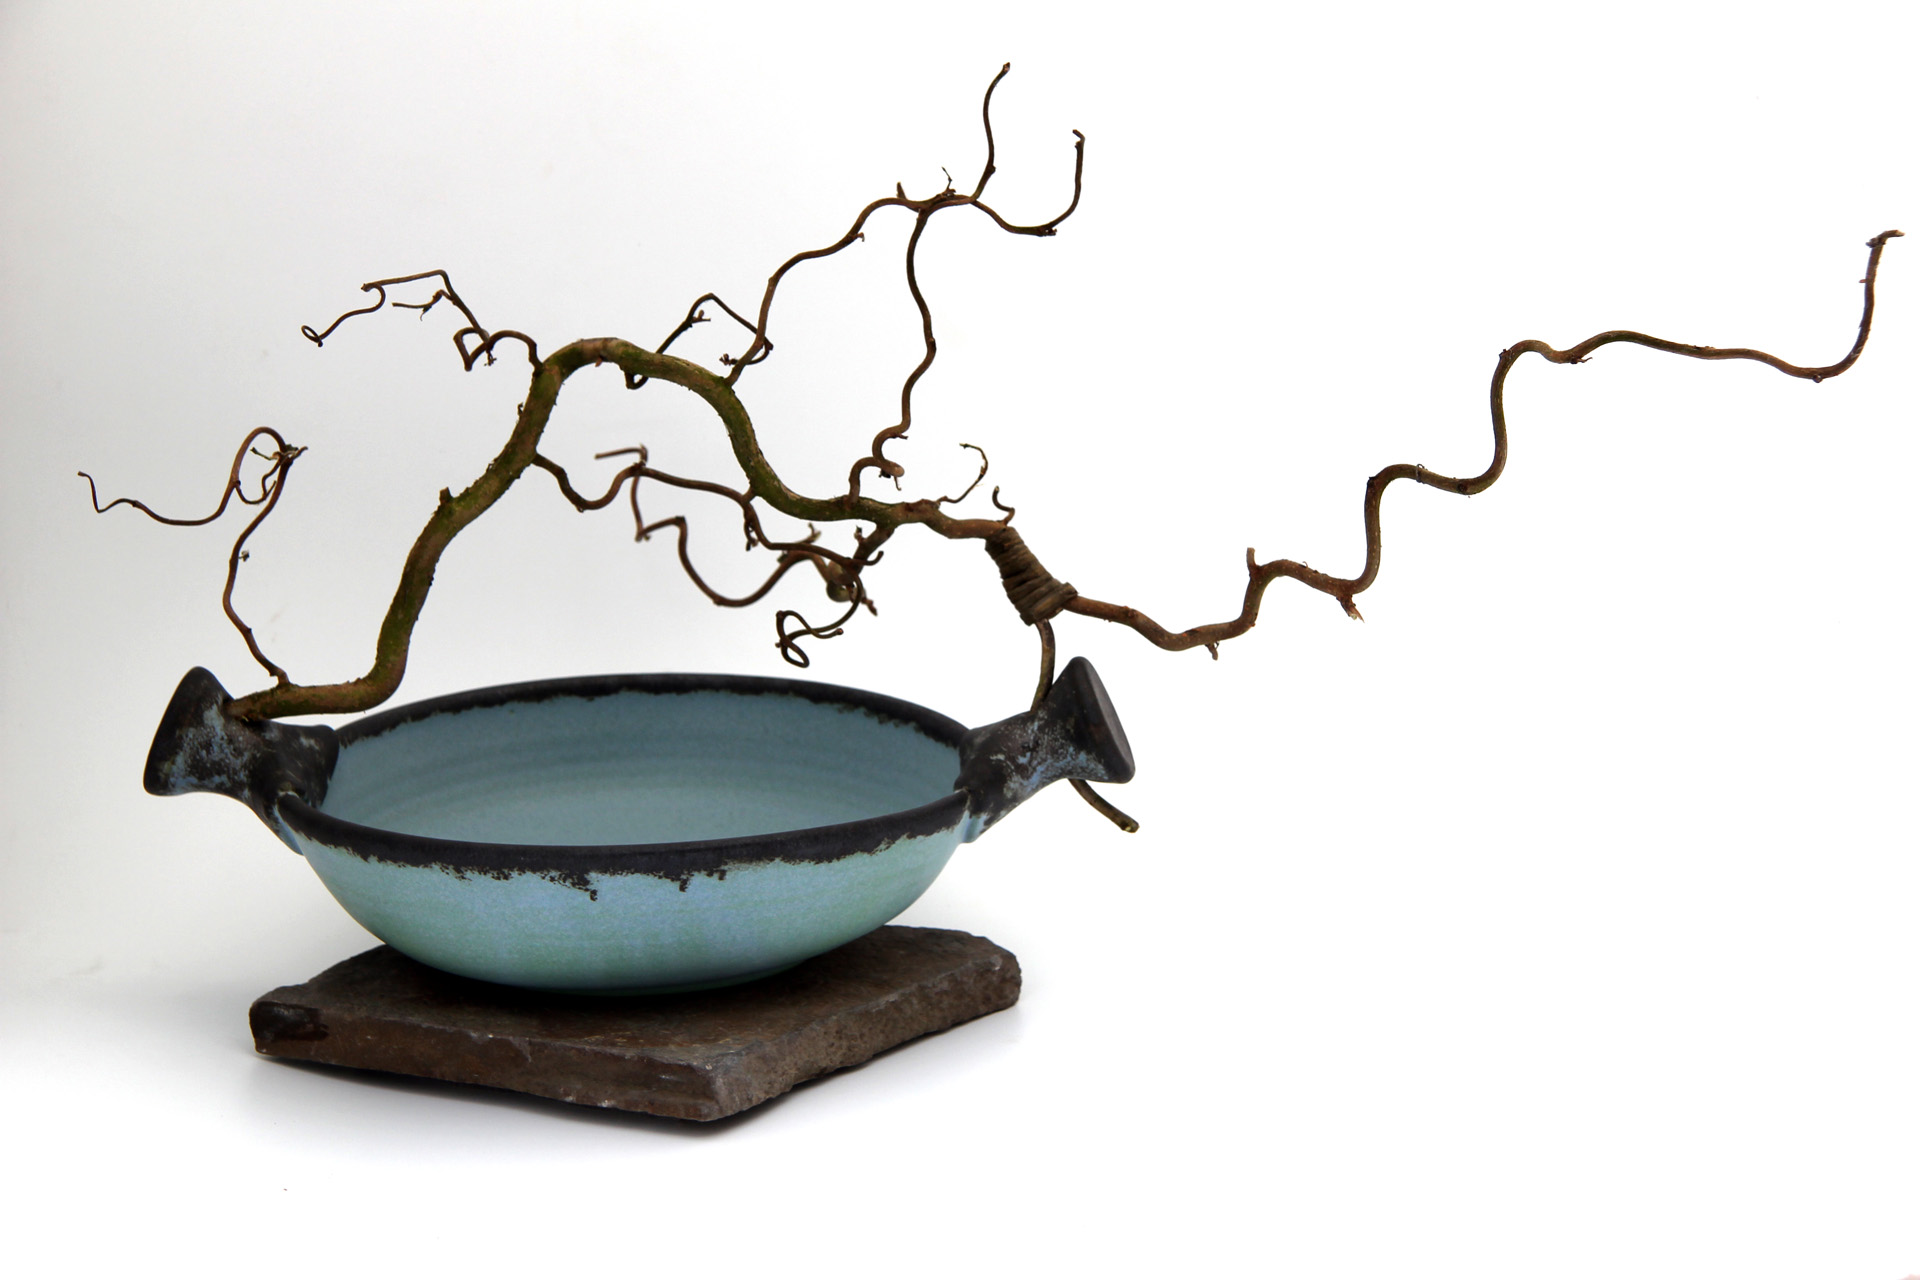 Bowl Twisted Branch - Stone